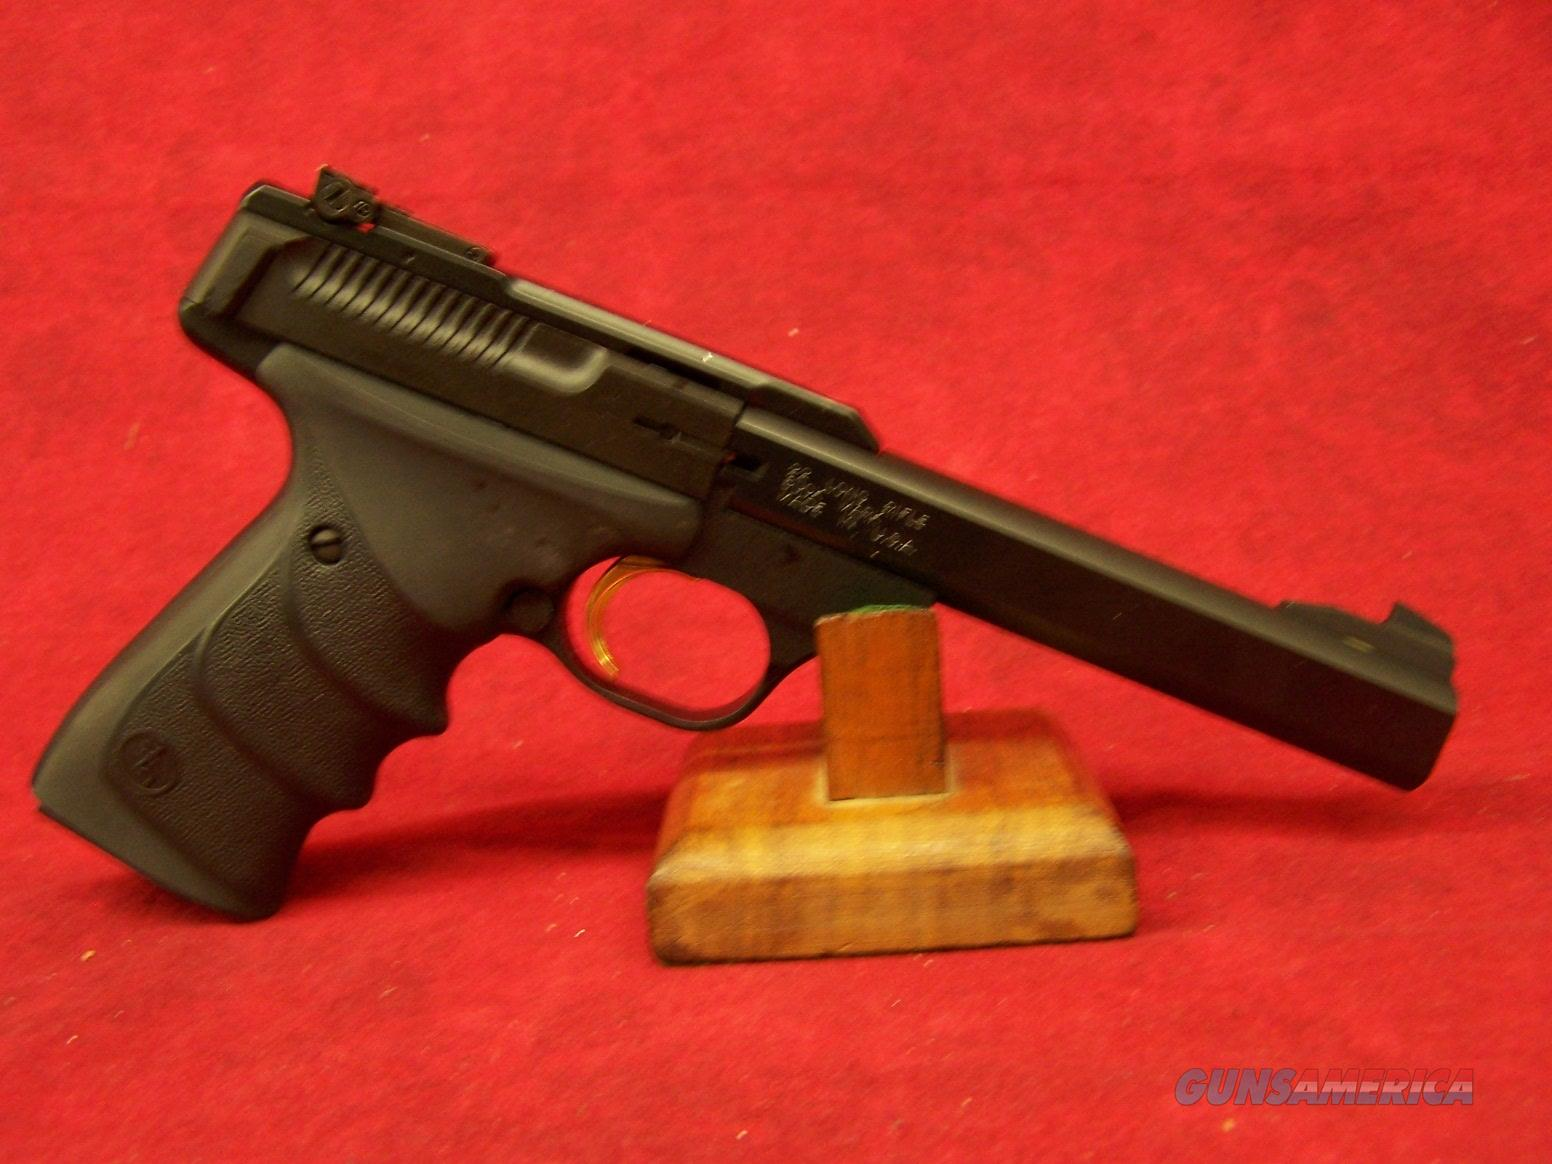 "Browning Buck Mark Standard URX - Calif. Compliant .22LR 5 1/2"" Barrel (051407490)  Guns > Pistols > Browning Pistols > Buckmark"